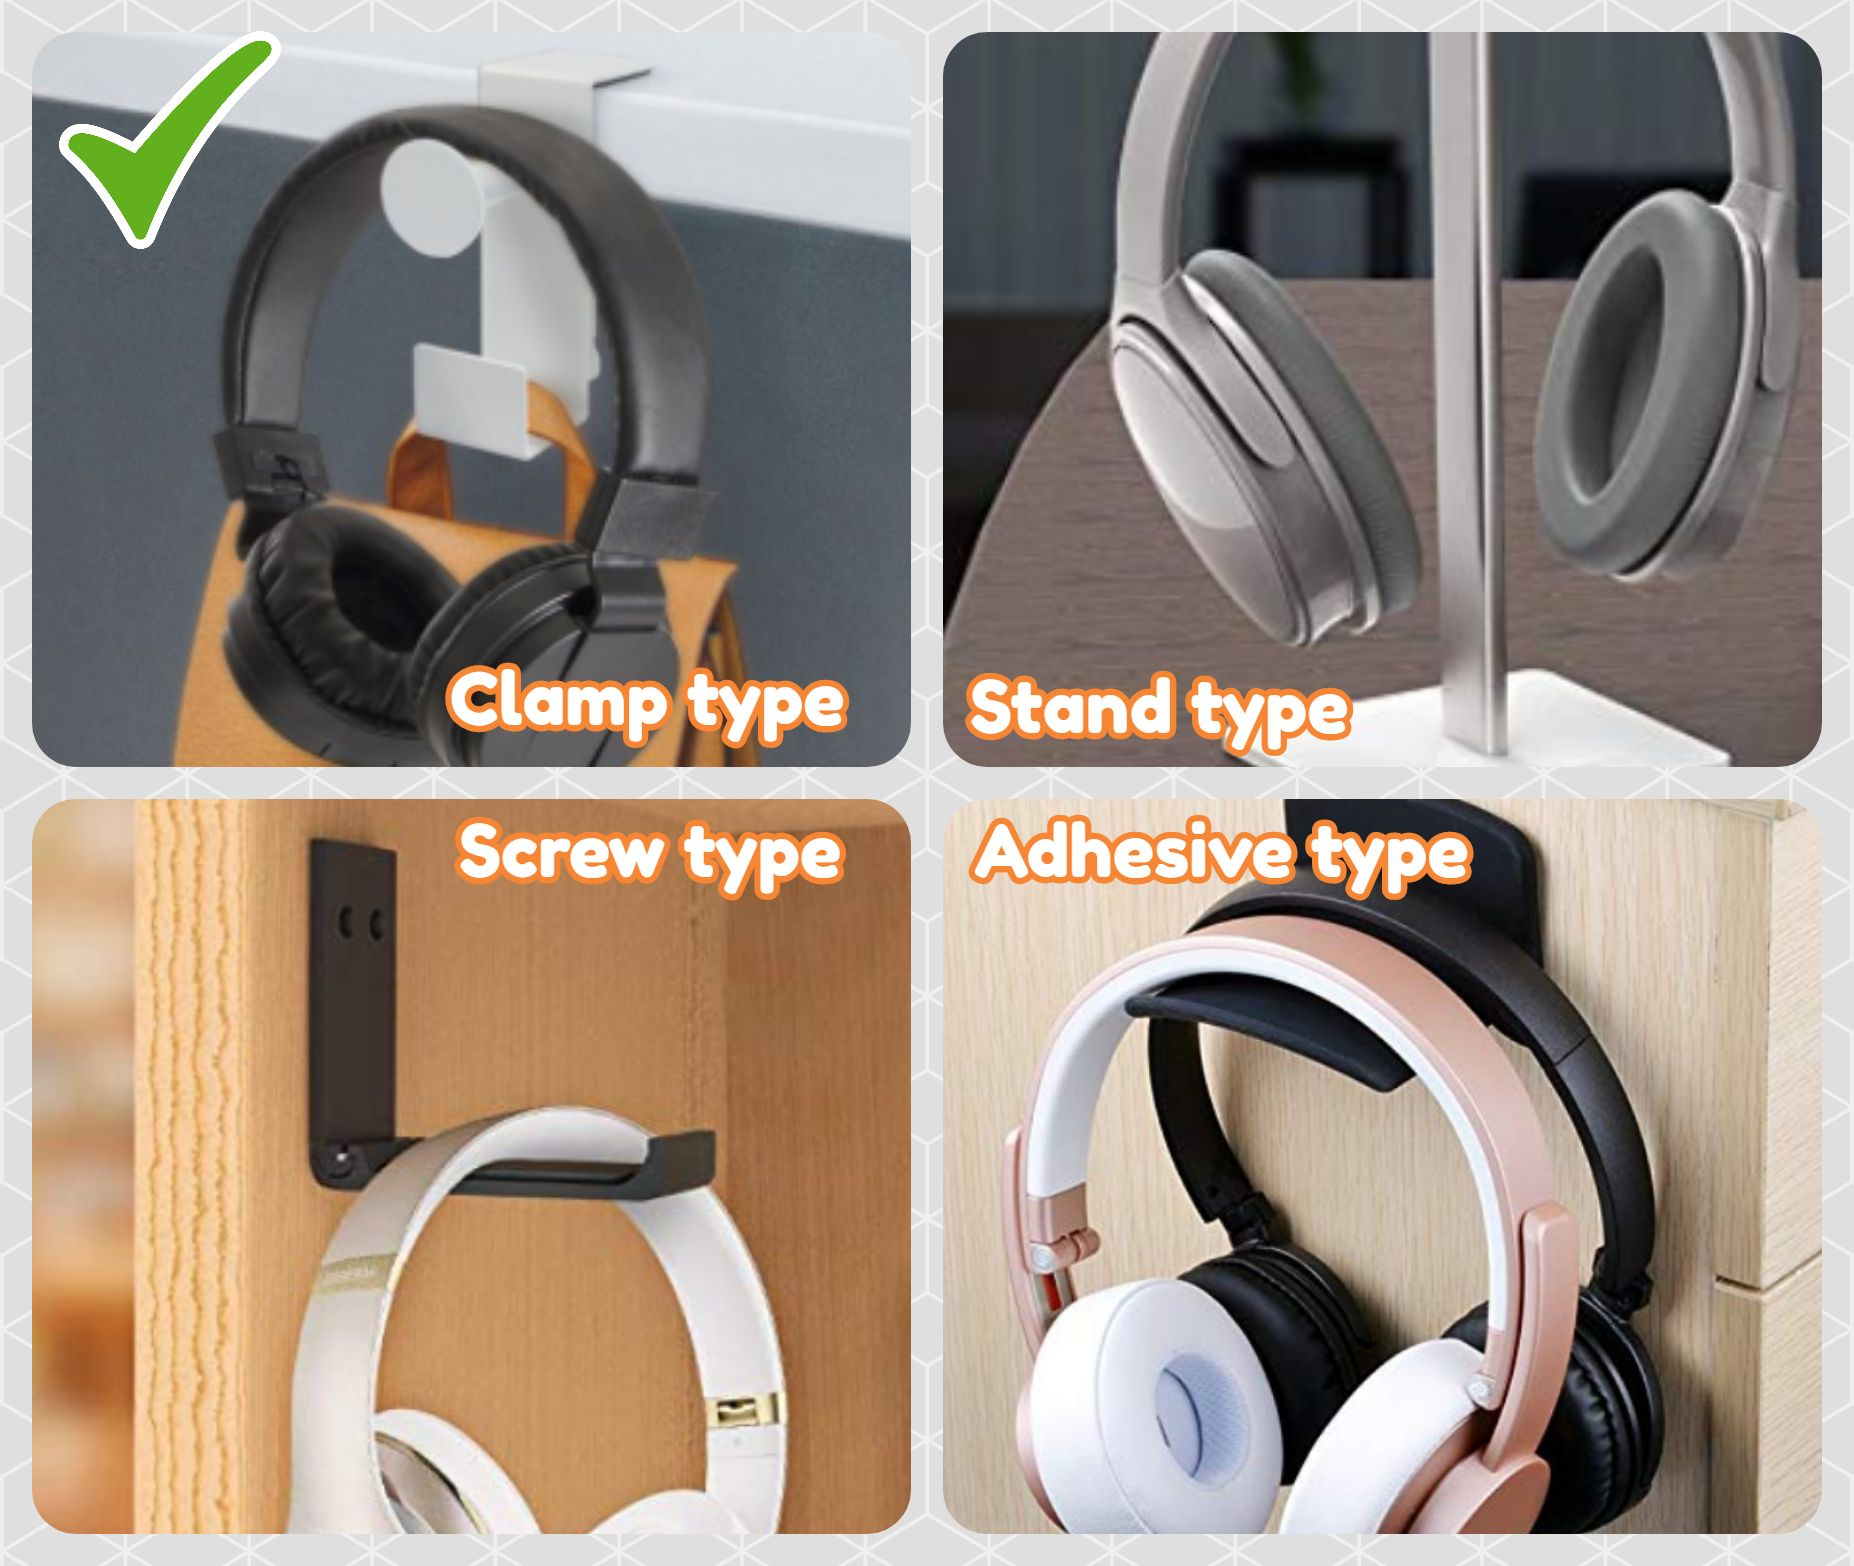 Headphone Hanger Comparison